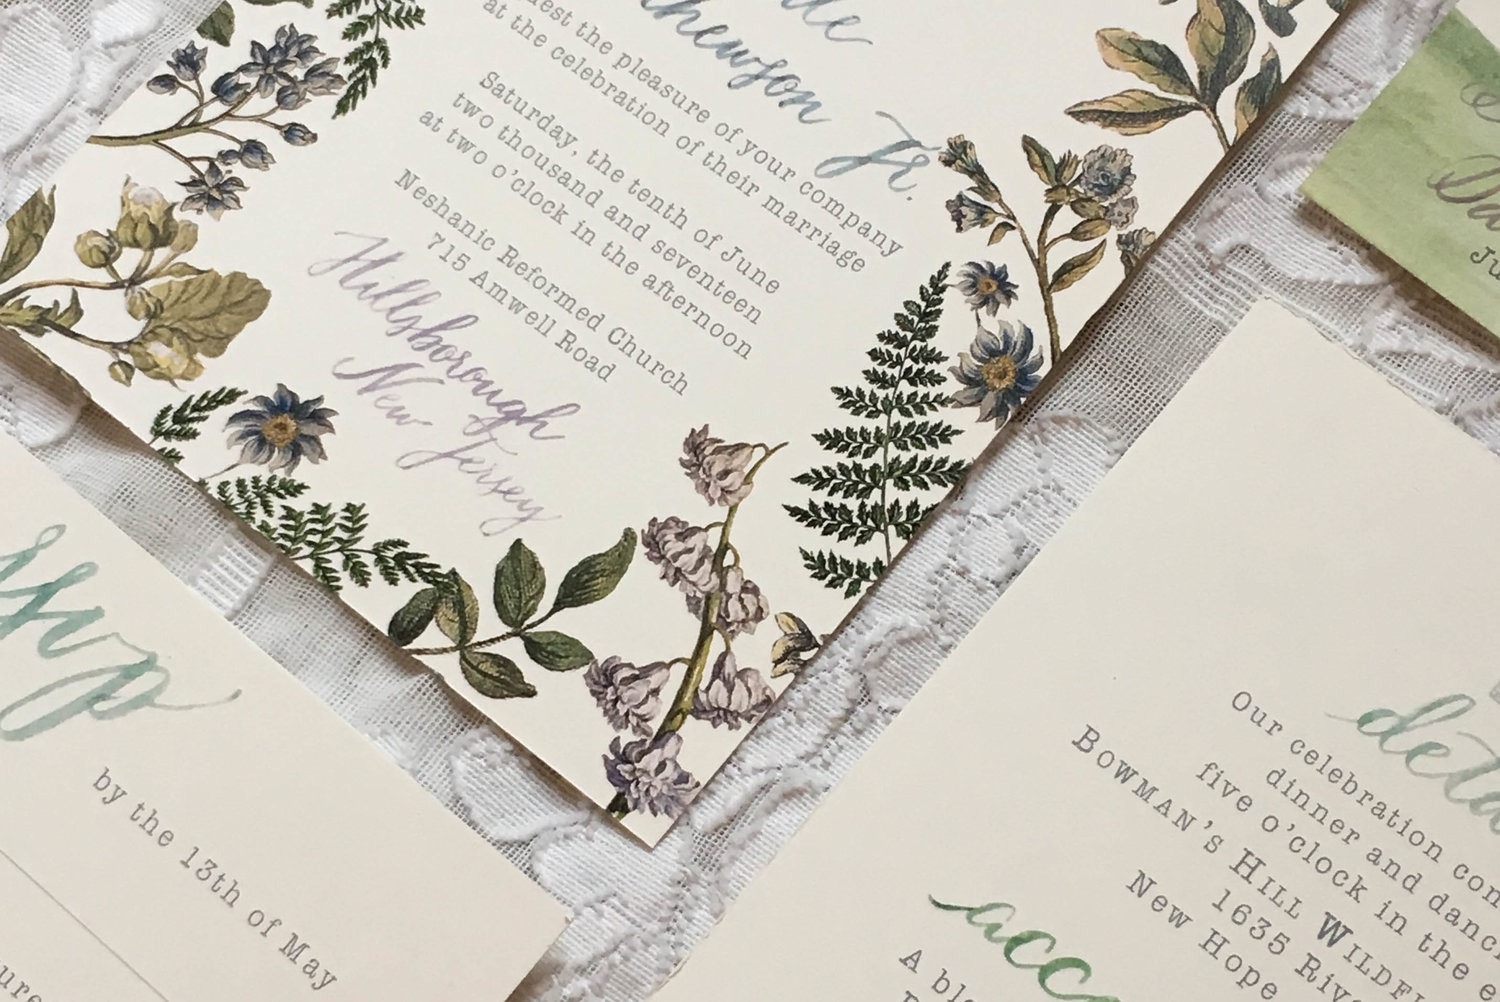 How to word your wedding invitations invitation wording and etiquette example of how to word wedding invitations filmwisefo